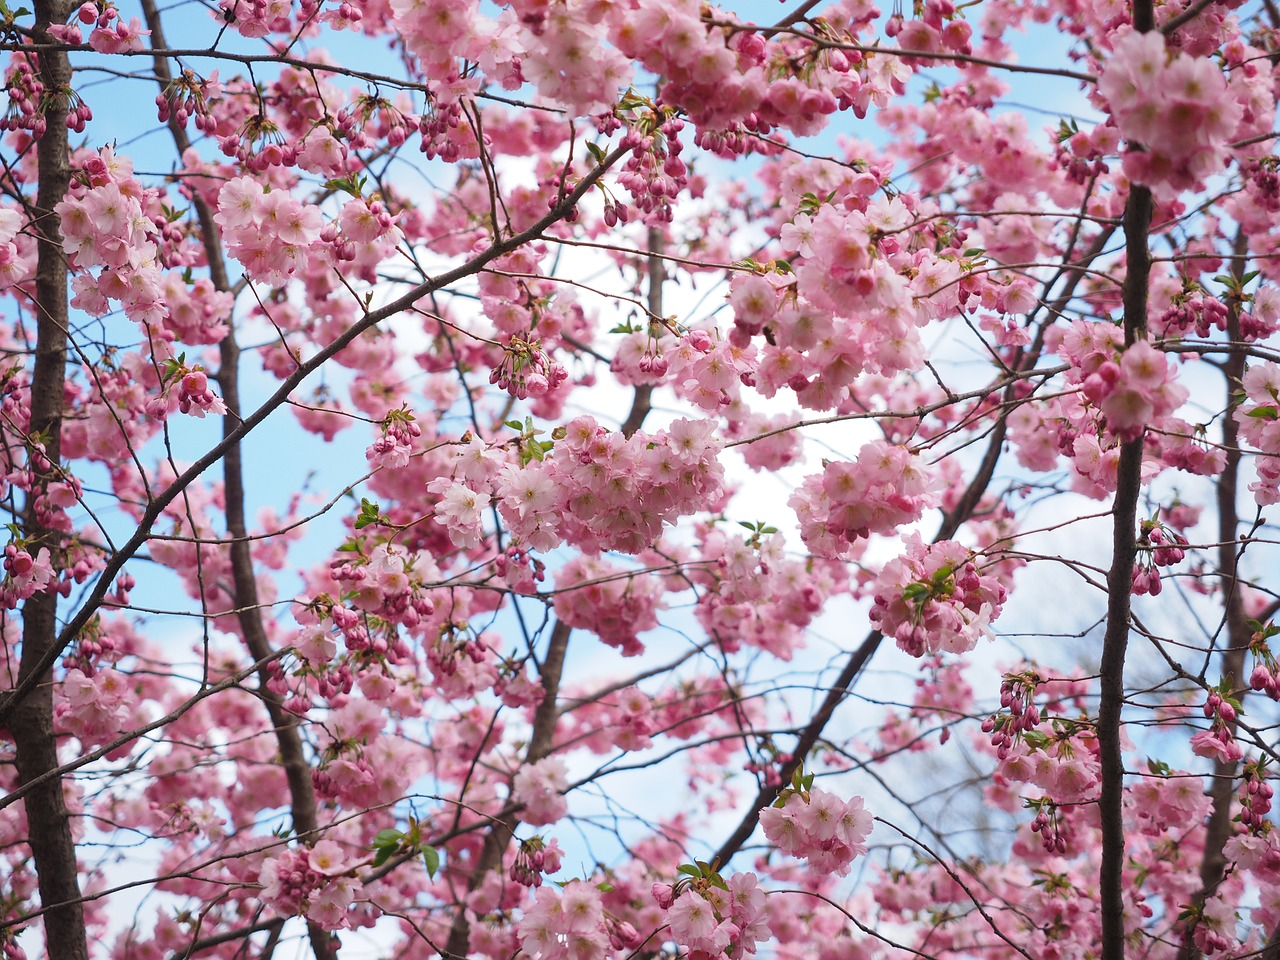 Incredible Cherry Blossom Trees Are Illuminating Berlins Streets